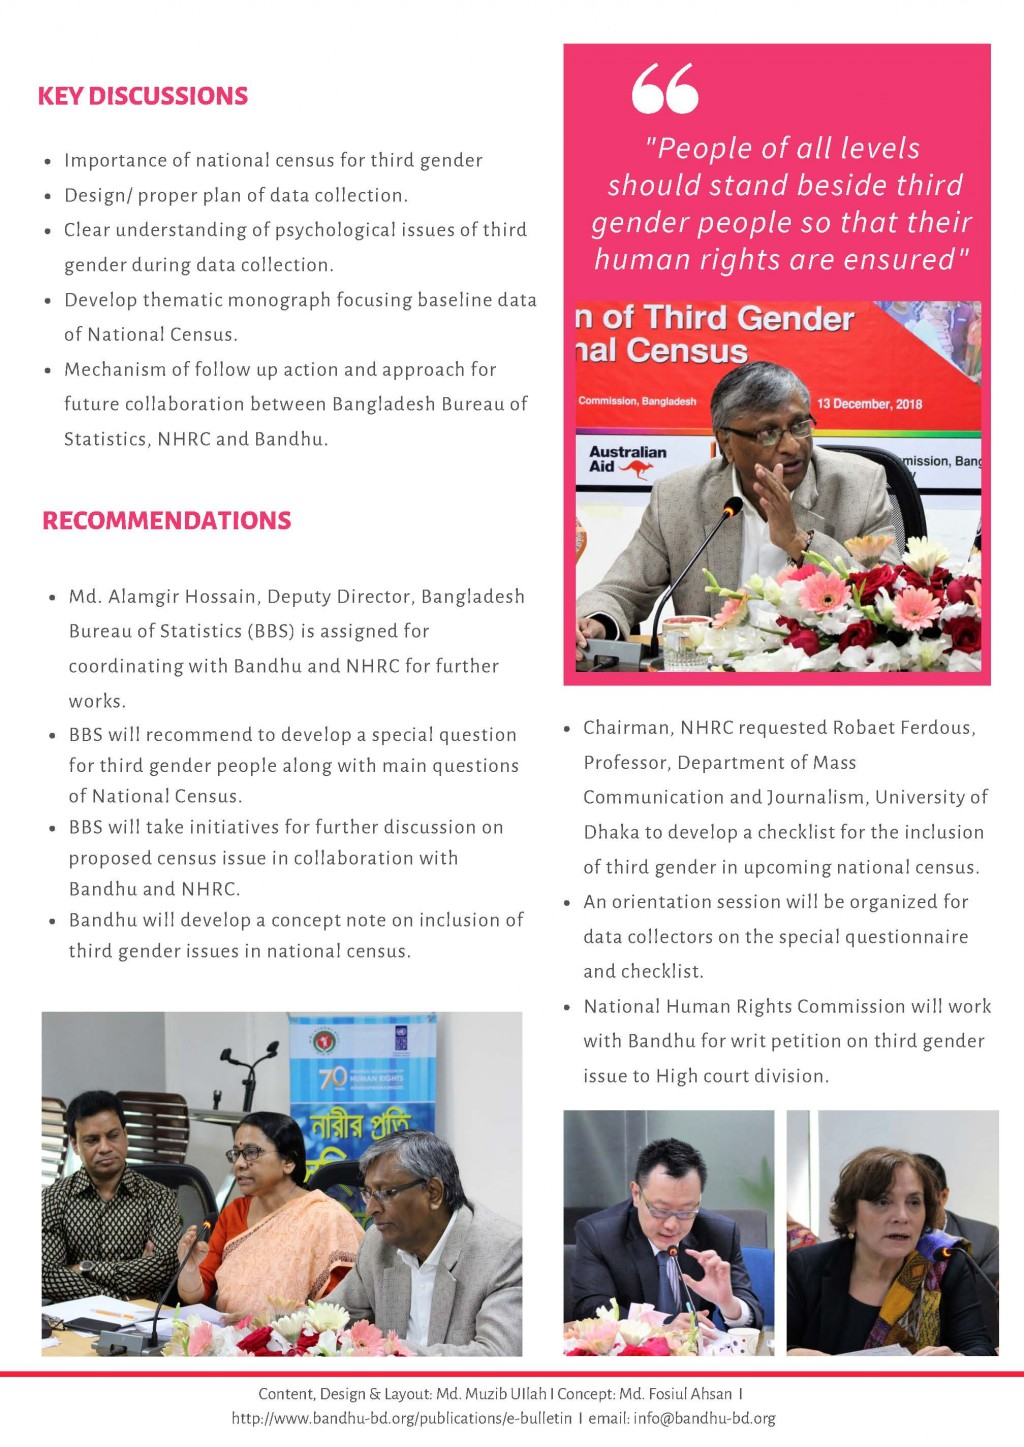 F_T_Consultation on Inclusion of Third Gender in National Census_Page_2